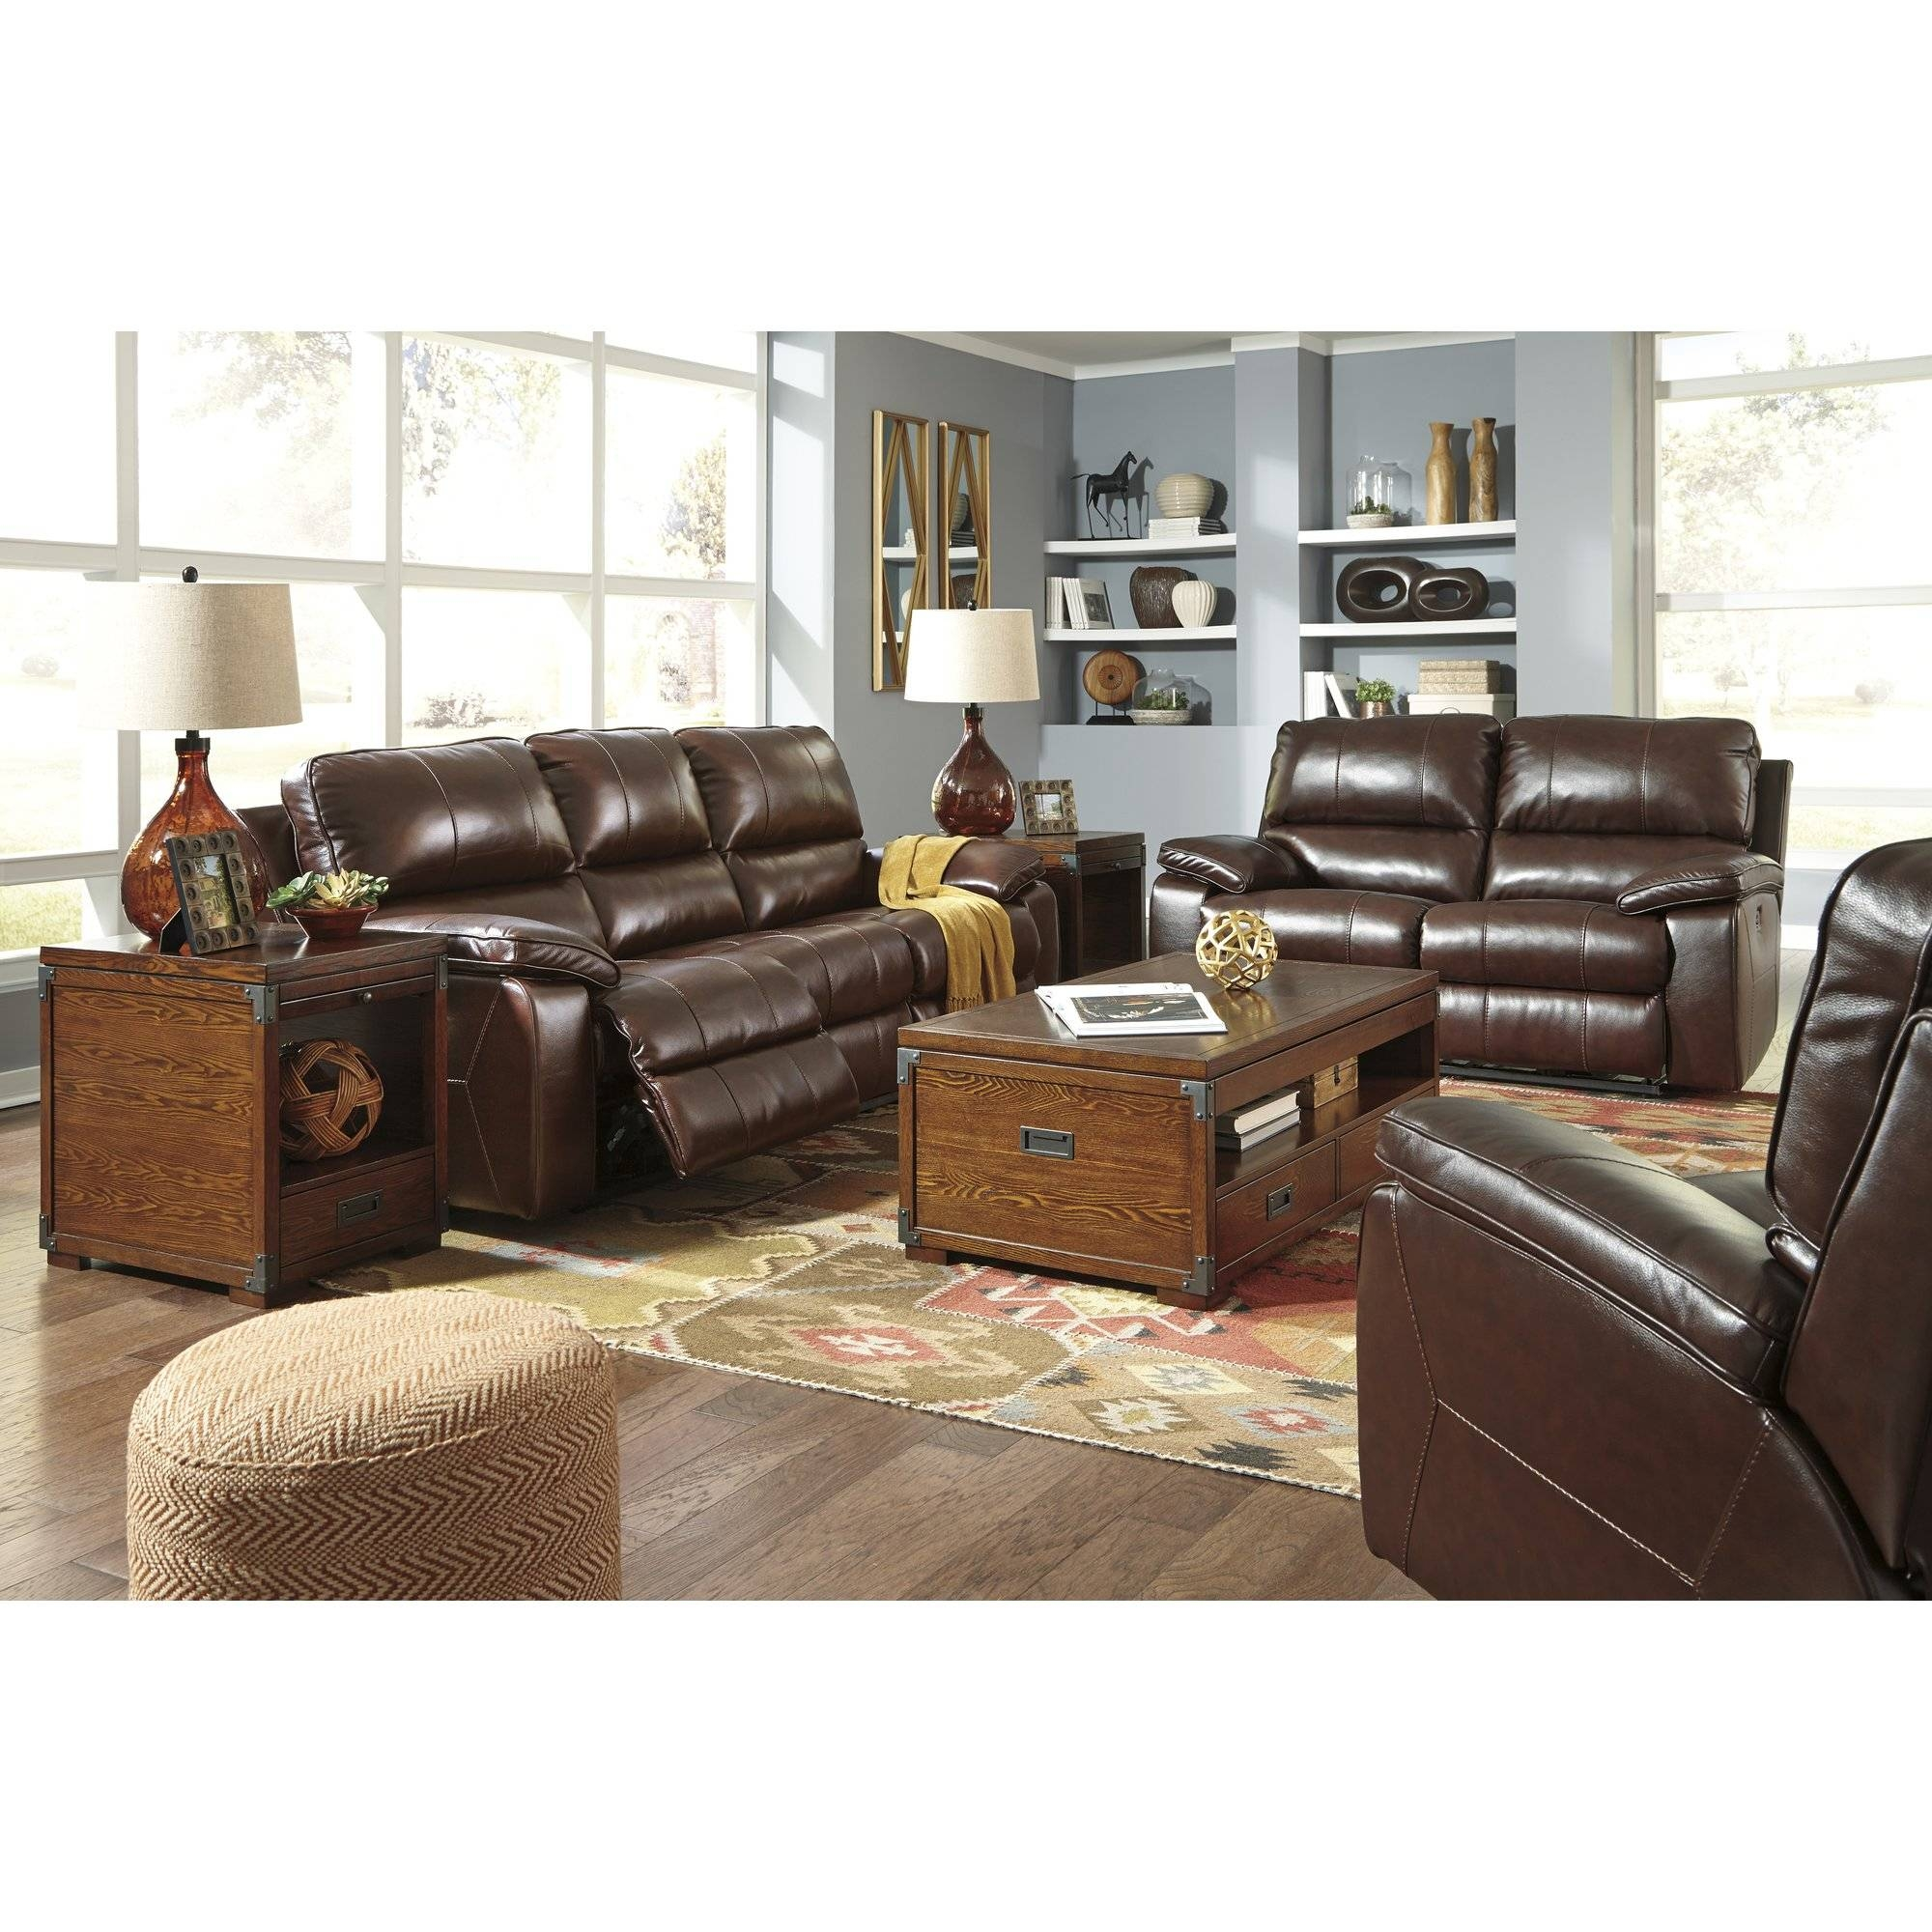 Red Barrel Studio Stratford Reclining Sofa | Wayfair Throughout Stratford Sofas (View 12 of 30)